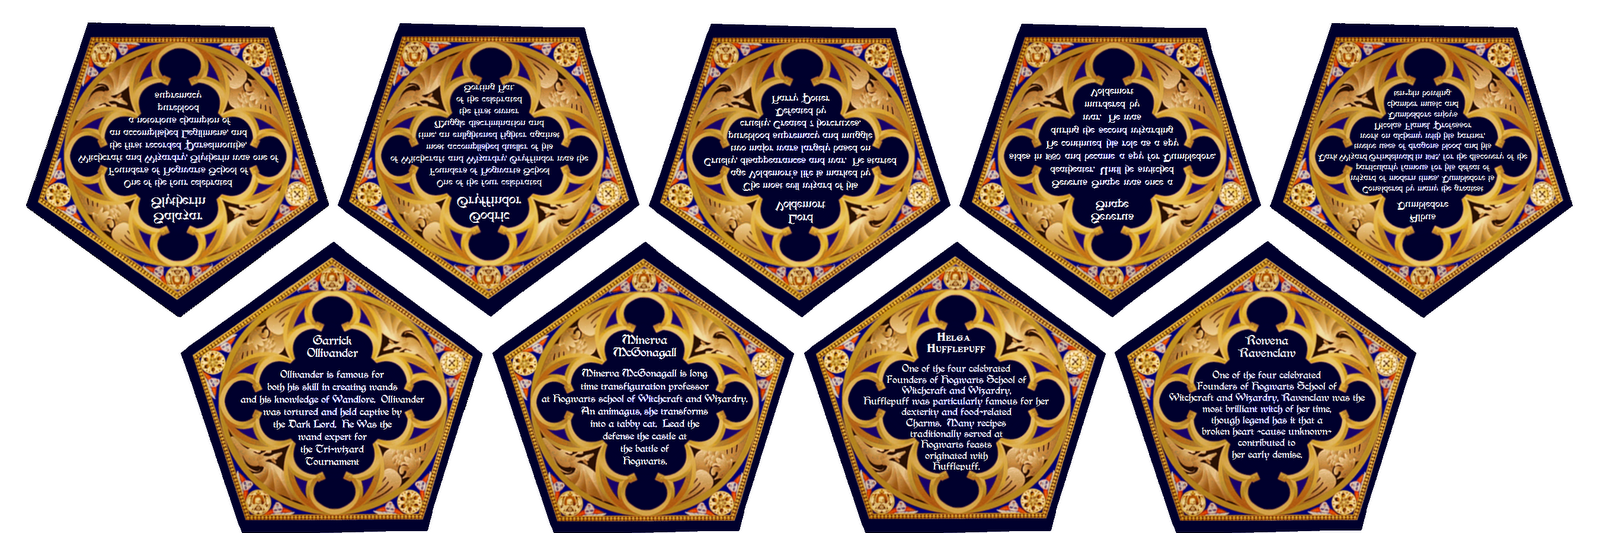 graphic relating to Harry Potter Chocolate Frog Cards Printable titled Record:Harry Potter - Sweet - Chocolate Frog Playing cards - Again.png